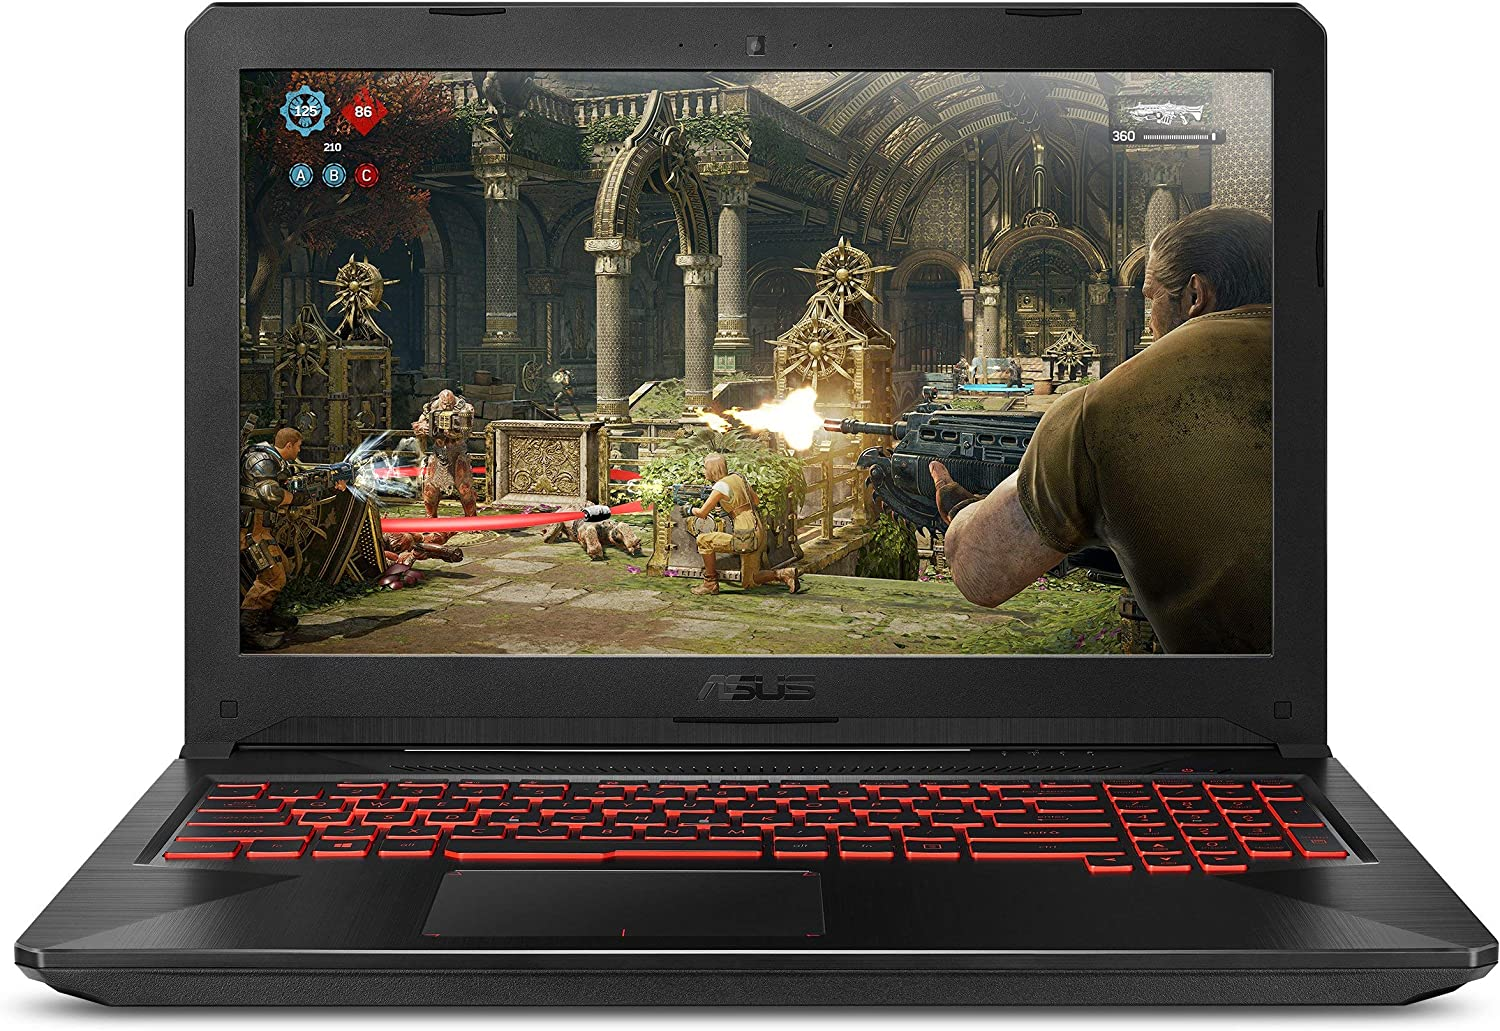 "ASUS FX504GE-ES72 Thin & Light TUF Gaming Laptop (FX504) Full HD, 8th-Gen Intel Core i7-8750H, GTX 1050 Ti, 8GB DDR4, 256GB M.2 SSD, Gigabit WiFi, 15.6"" (Renewed)"